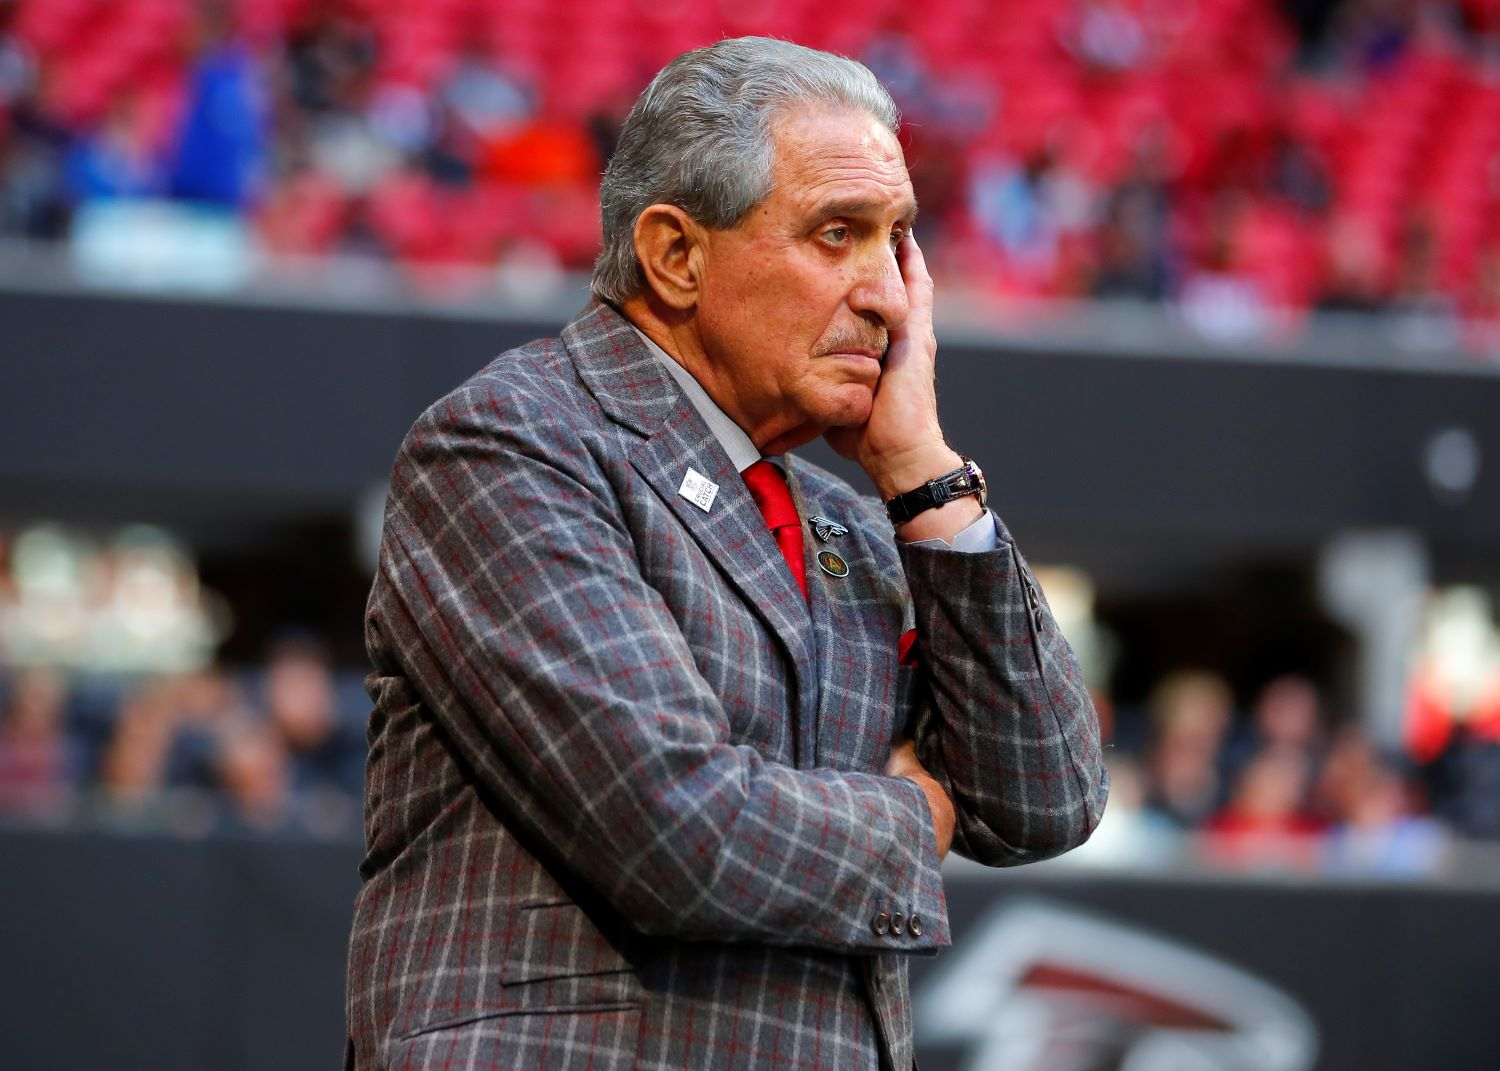 The Atlanta Falcons are targeting an ESPN analyst for their general manager vacancy.